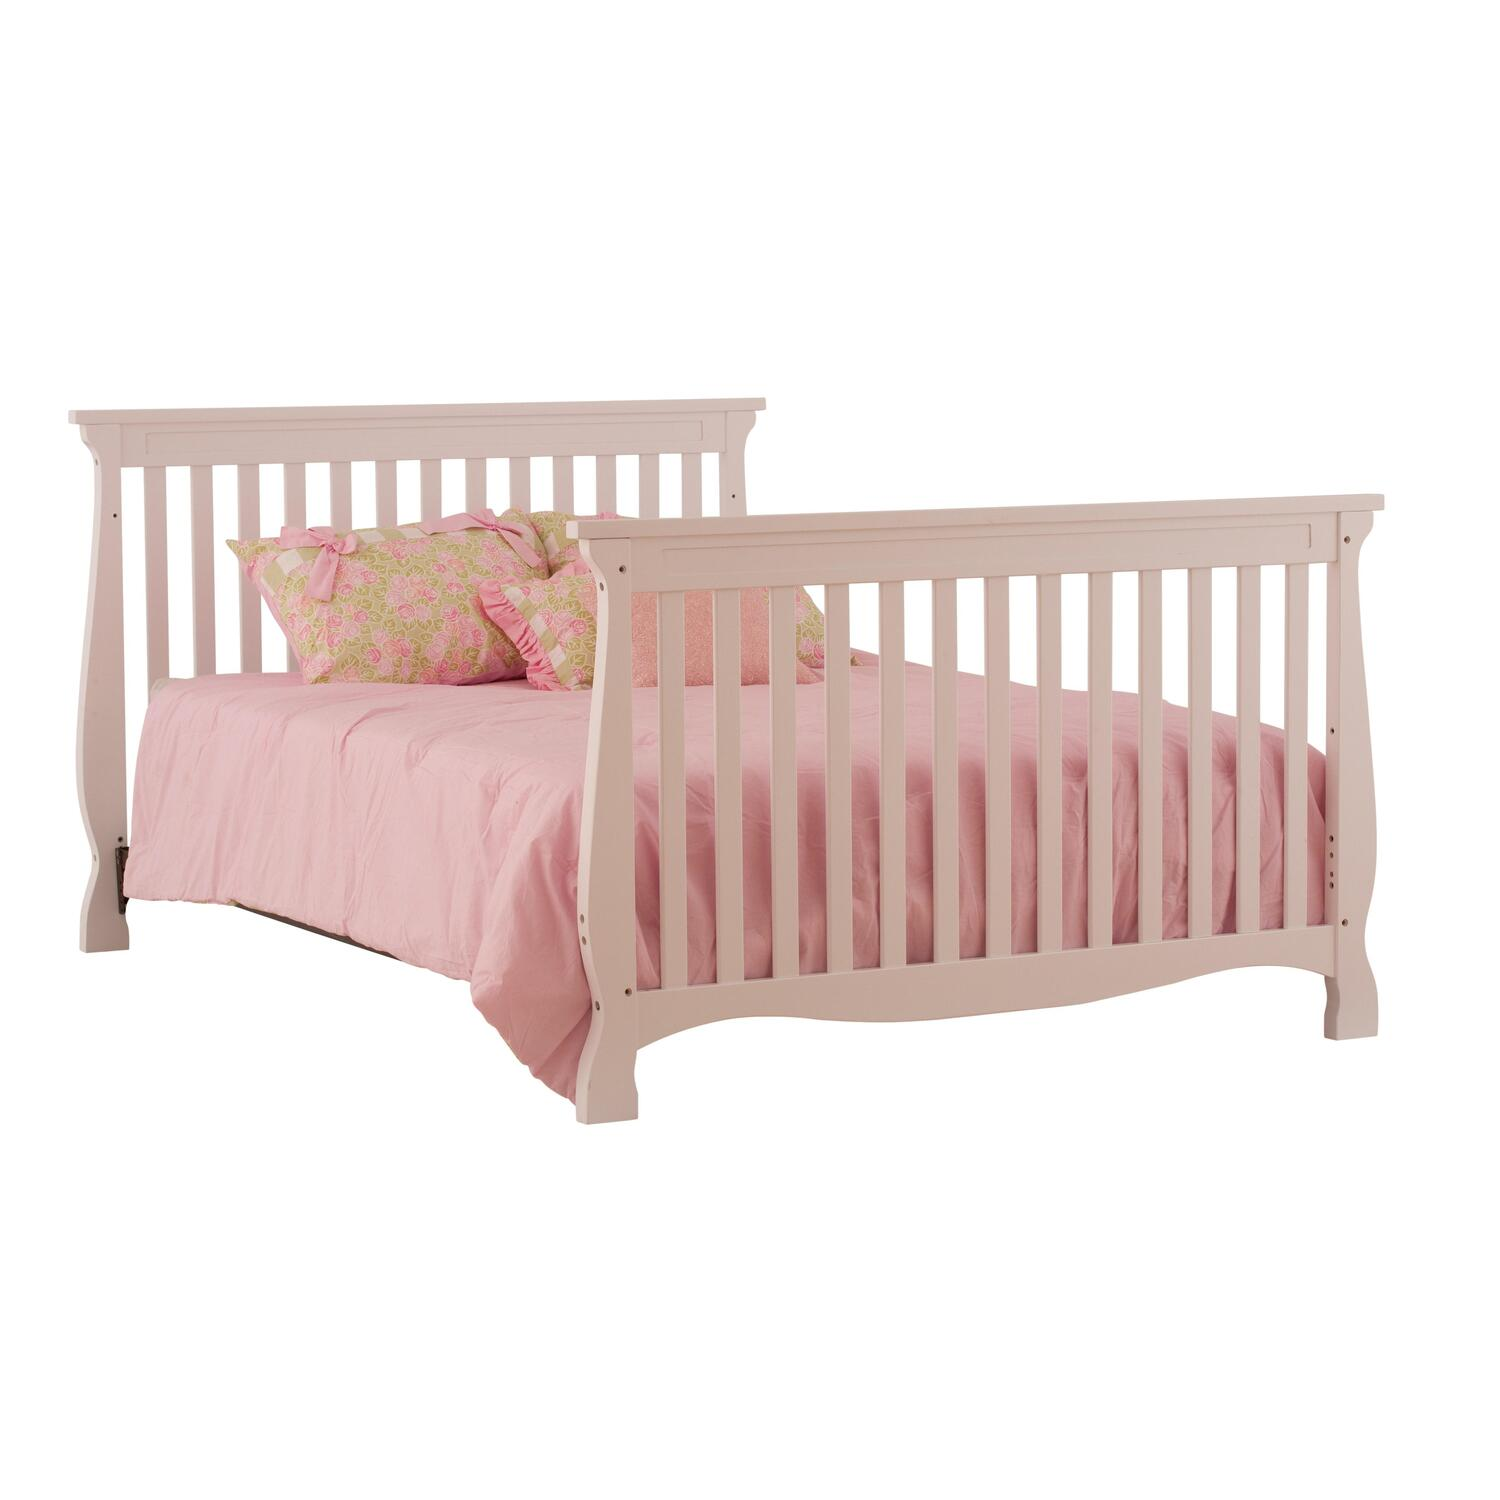 Stork Craft Carrara 4 In 1 Fixed Side Convertible Crib